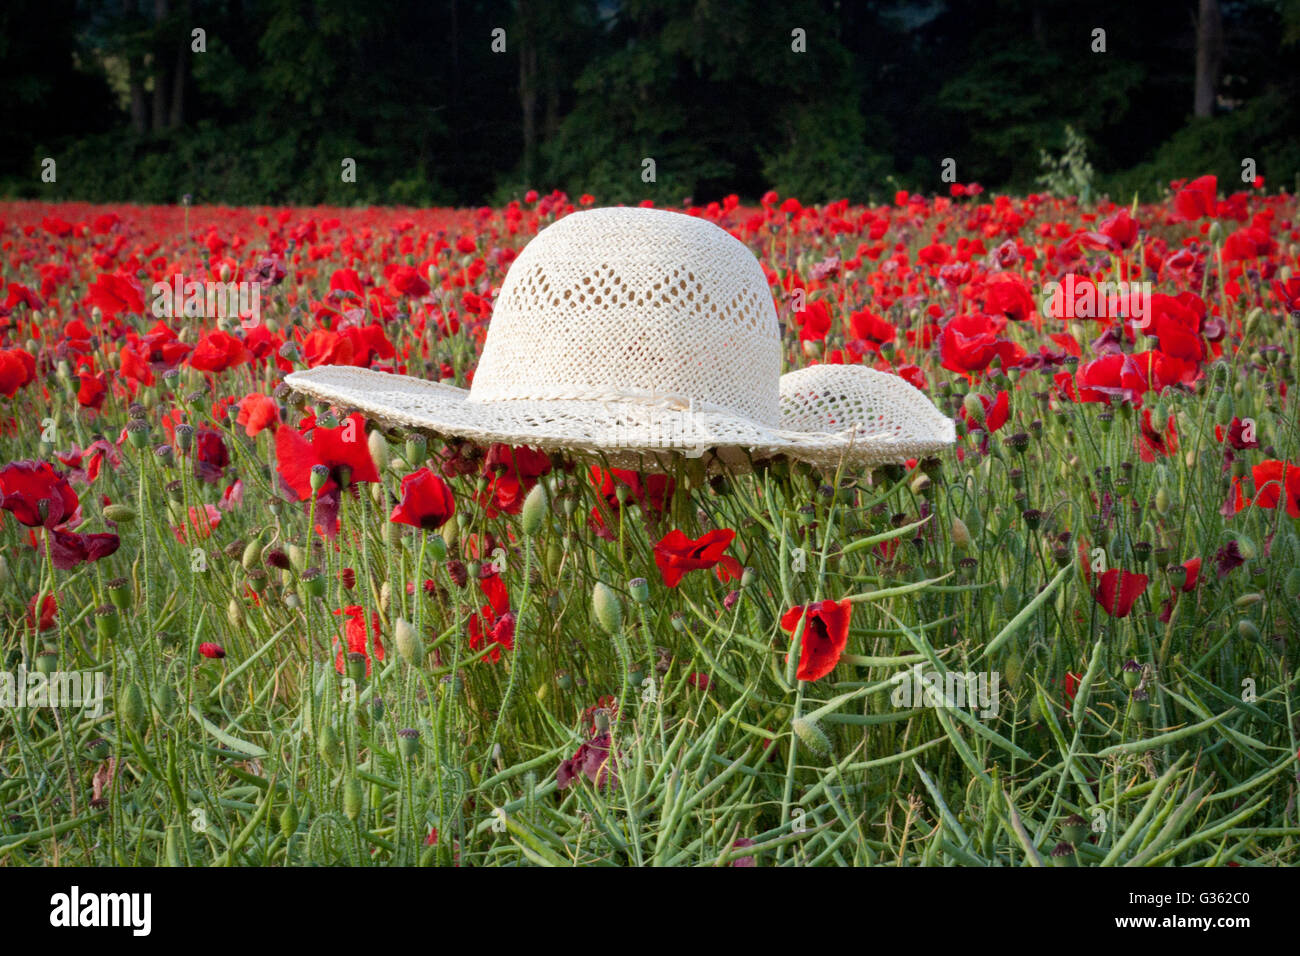 A summery straw hat sat on a field of red poppies - Stock Image